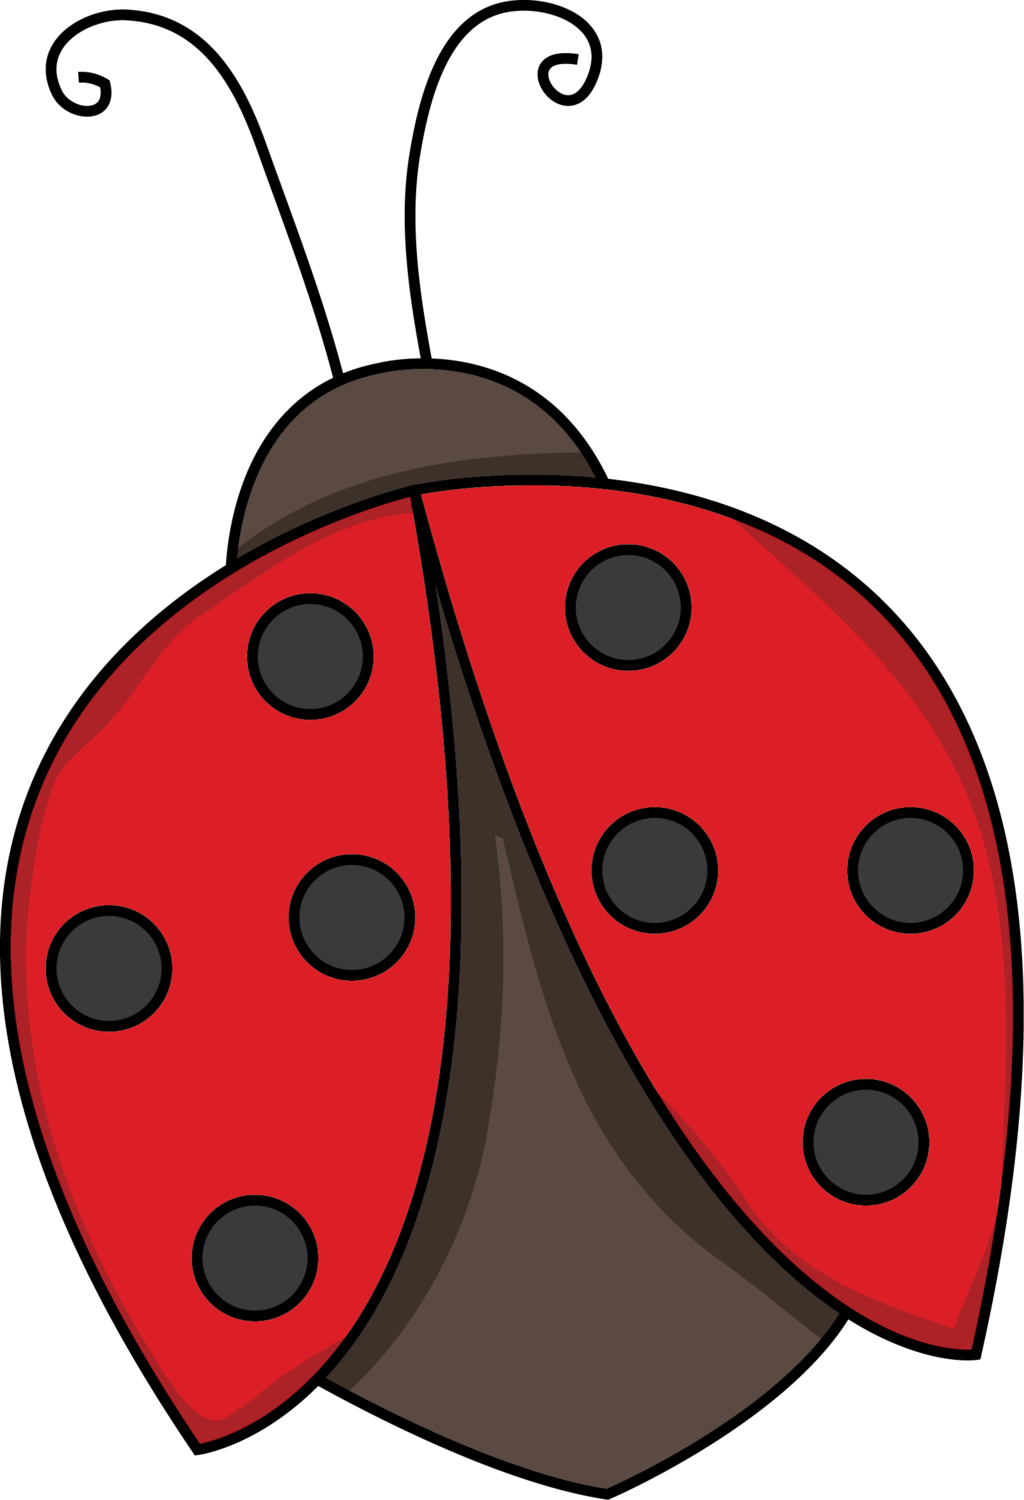 Clipart - Ladybug - Clipart library - Cl-Clipart - Ladybug - Clipart library - Clipart library-10